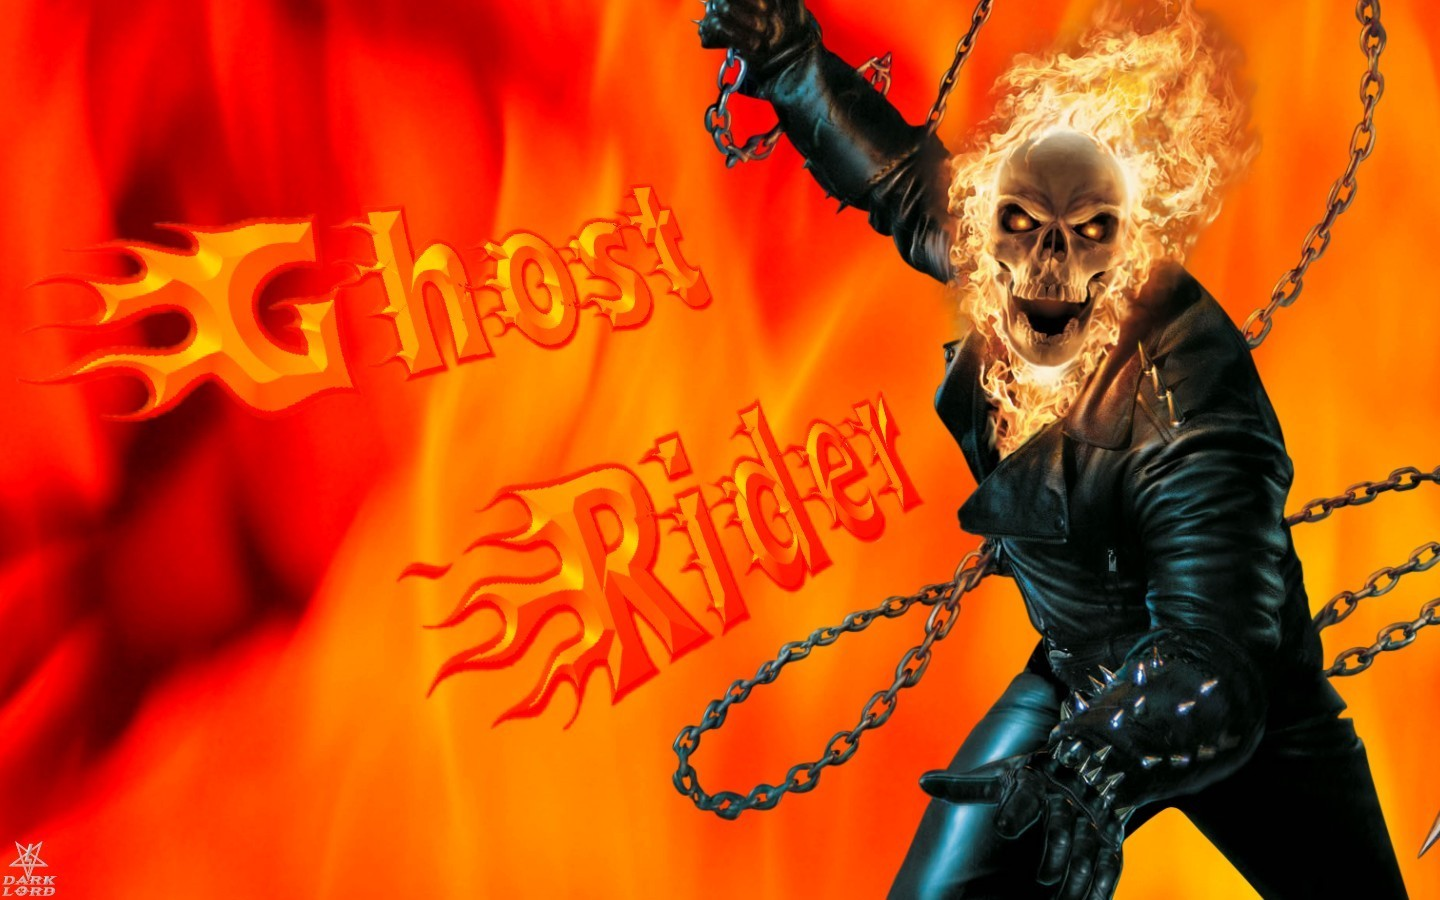 ghost rider images ghost rider wallpaper hd wallpaper and